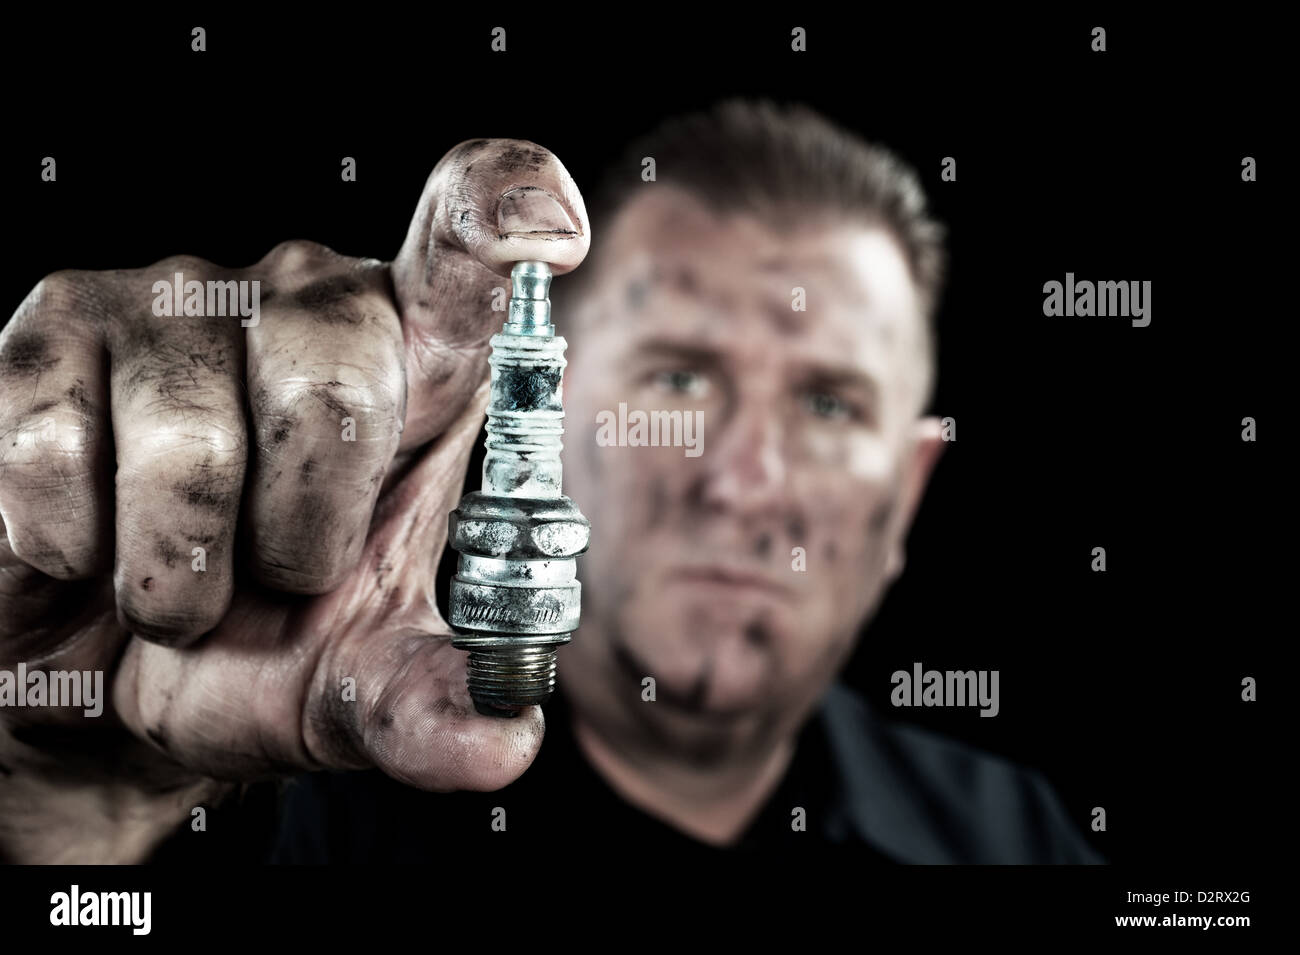 An auto mechanic shows a damaged and worn spark plug as he performs a tune up. - Stock Image